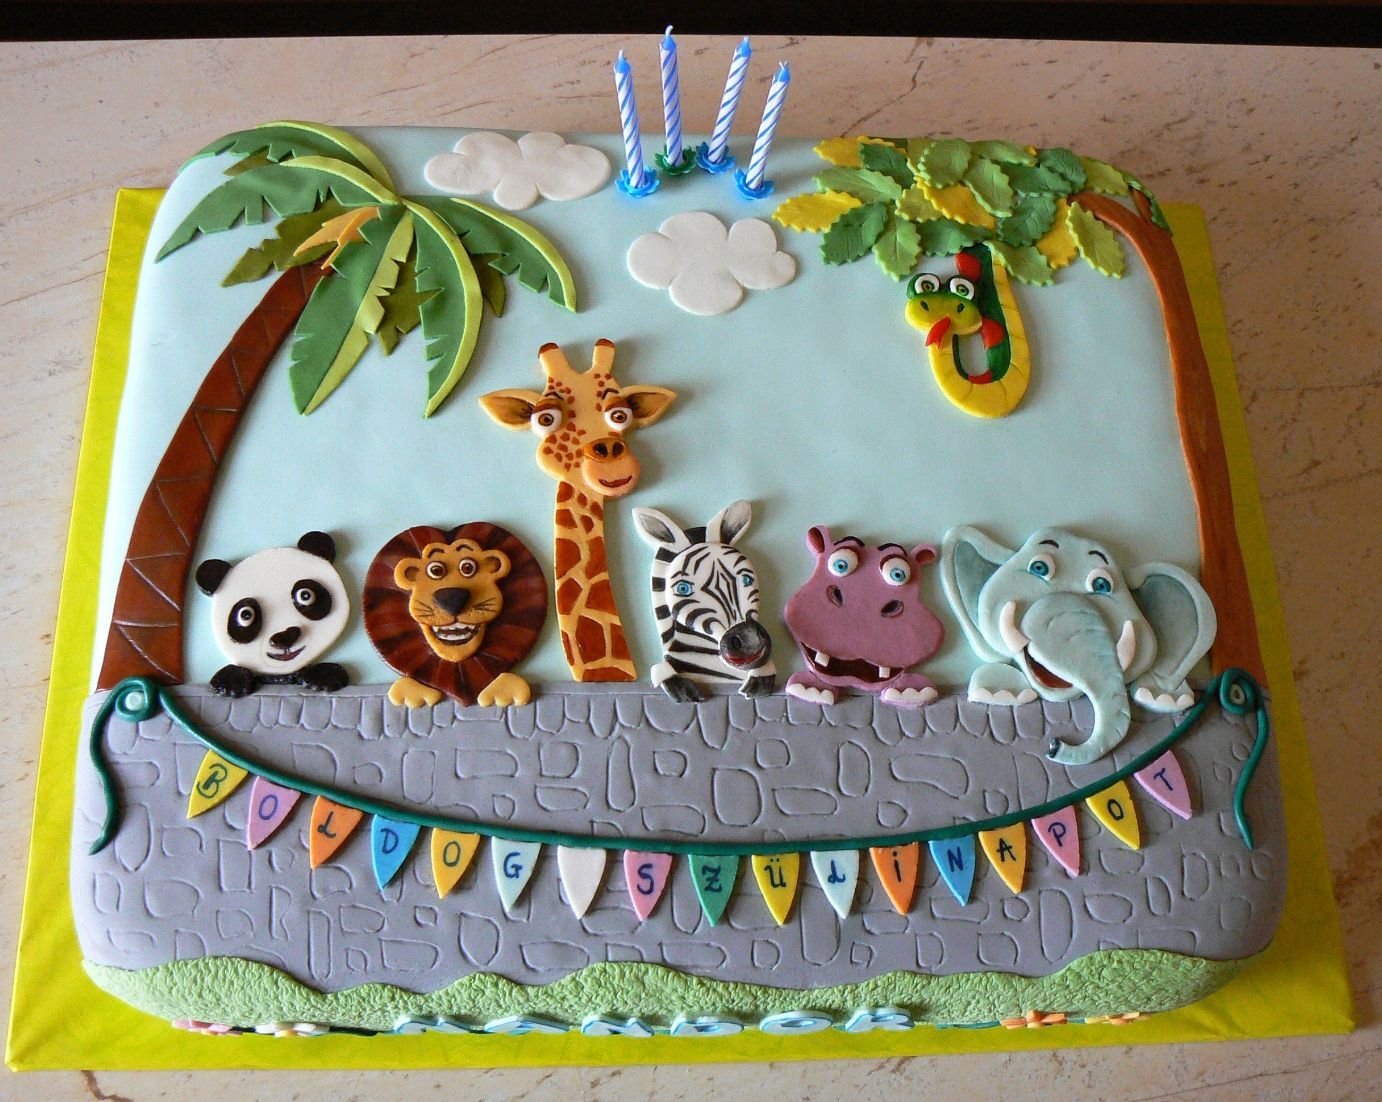 Cake Decorating Animal Figures Safari Cake Fondant Covered Cake With Painted Fondant Cut Out